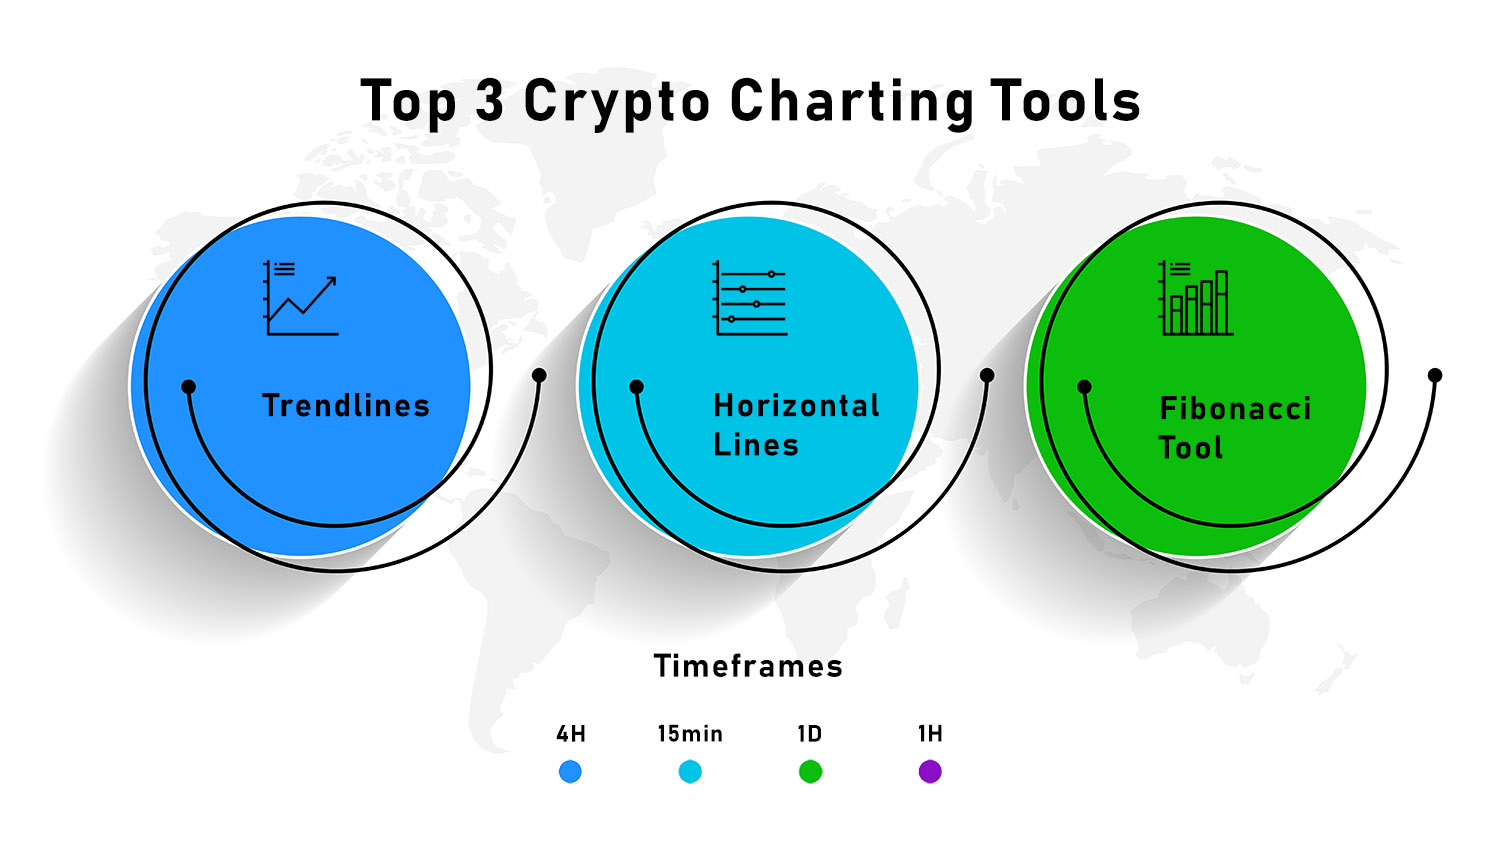 The Most Popular Crypto Charting Tools and Timeframes Infographic